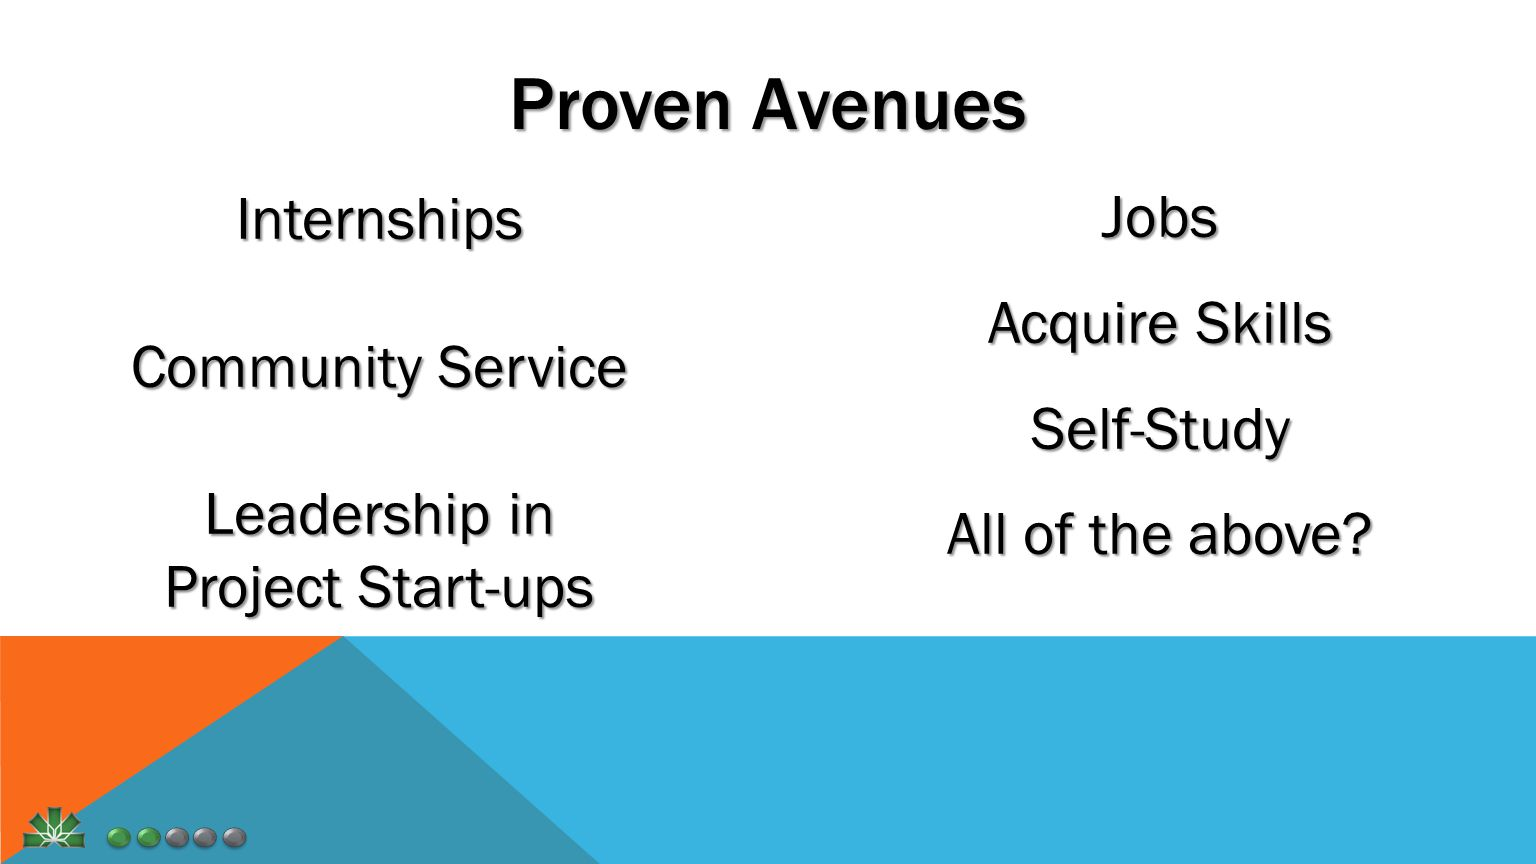 Proven Avenues Internships Community Service Leadership in Project Start-ups Jobs Acquire Skills Self-Study All of the above